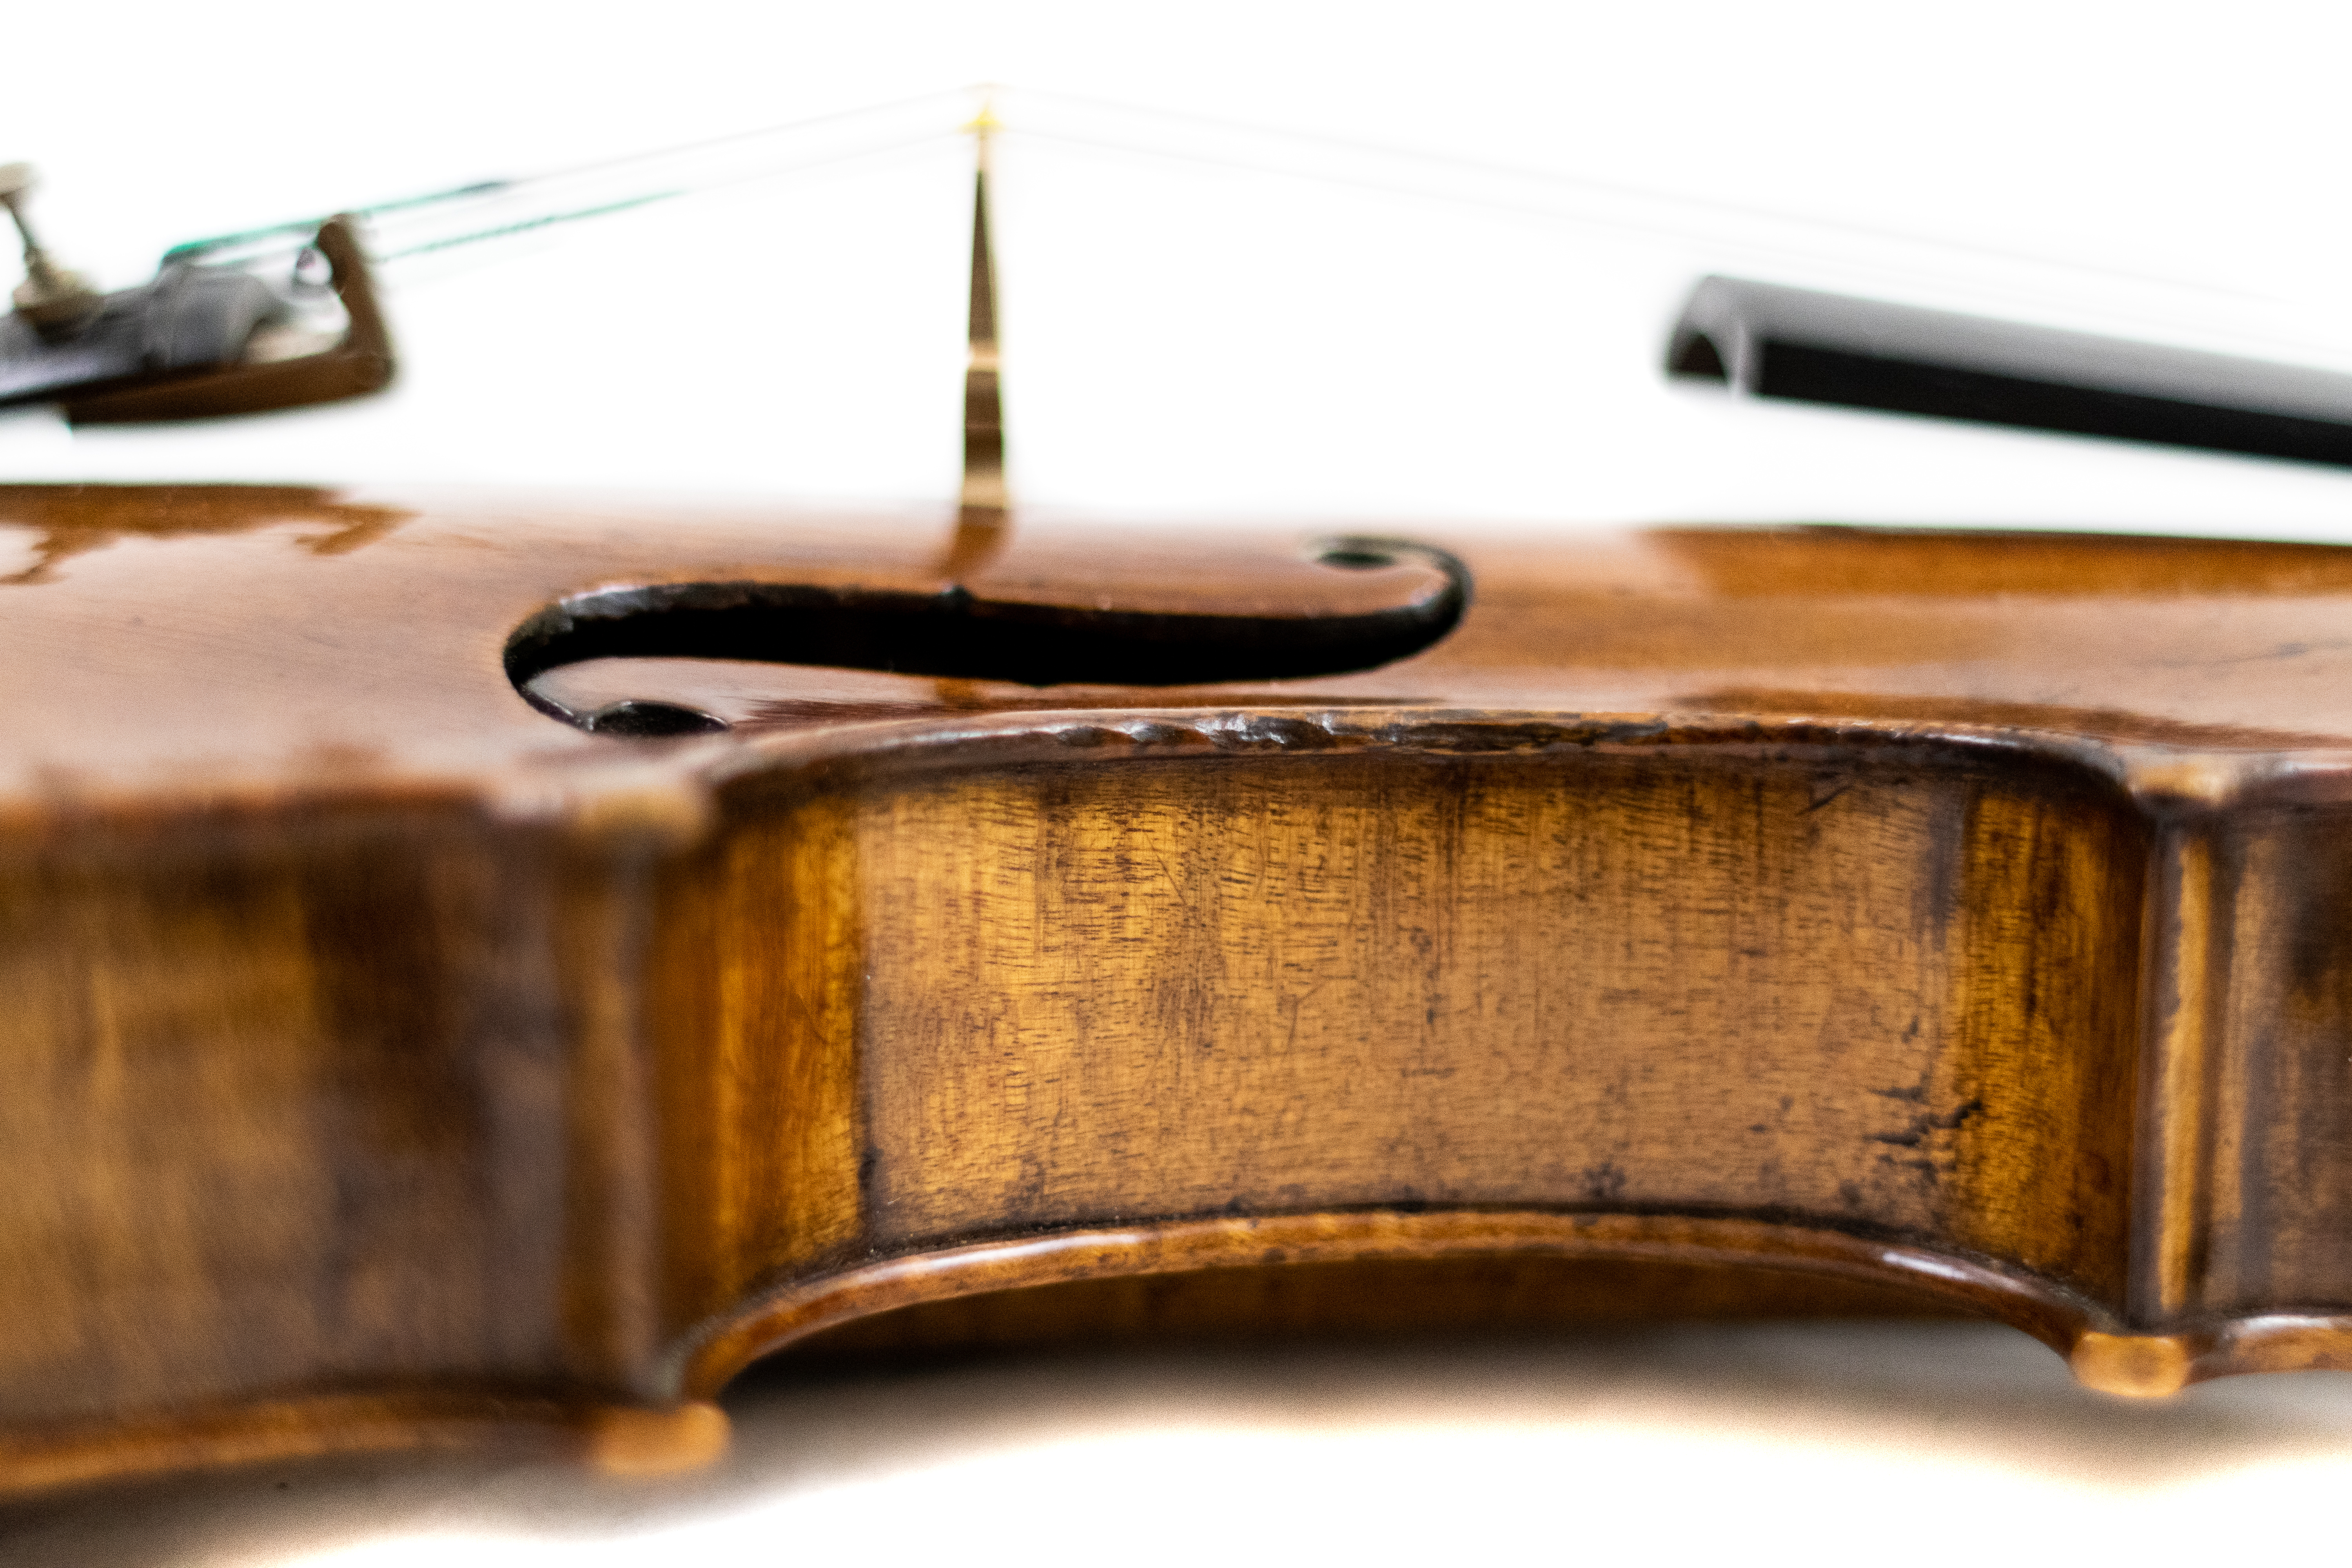 a side view of one of Amro's many performer violins